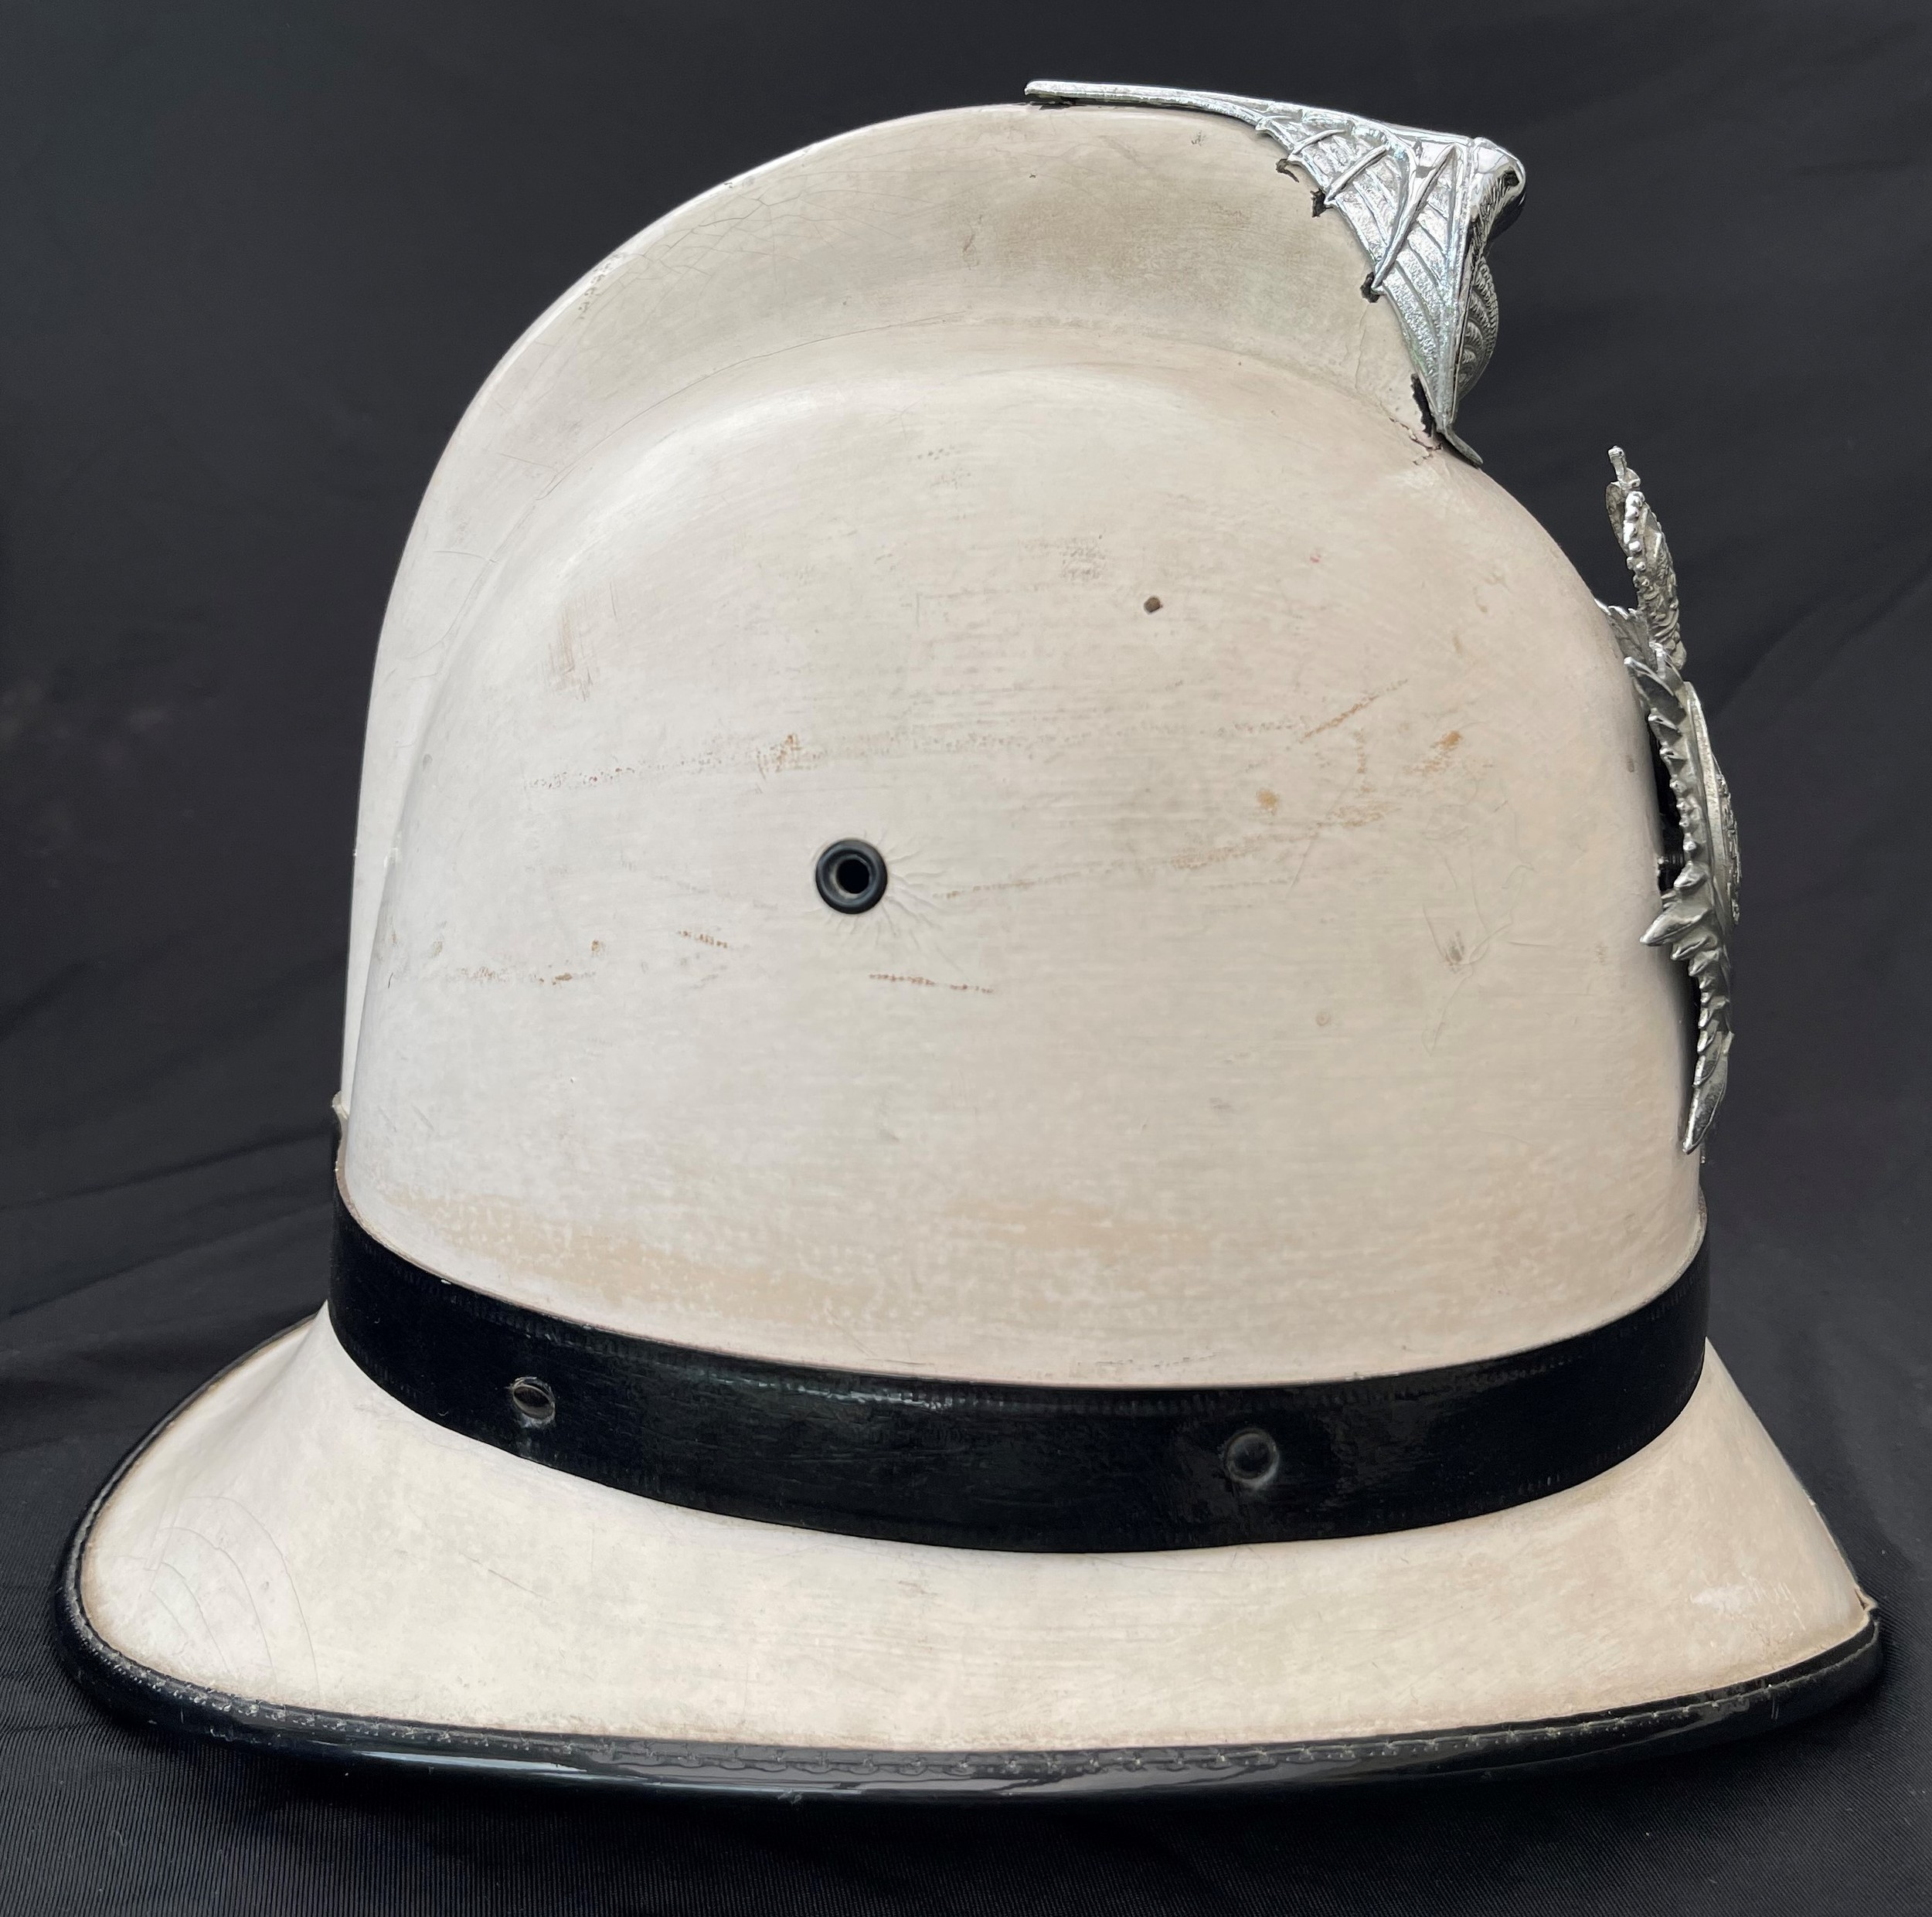 Southend on Sea Constabulary Summer White Police Helmet complete with Queens Crown Helmet Plate. - Image 4 of 6